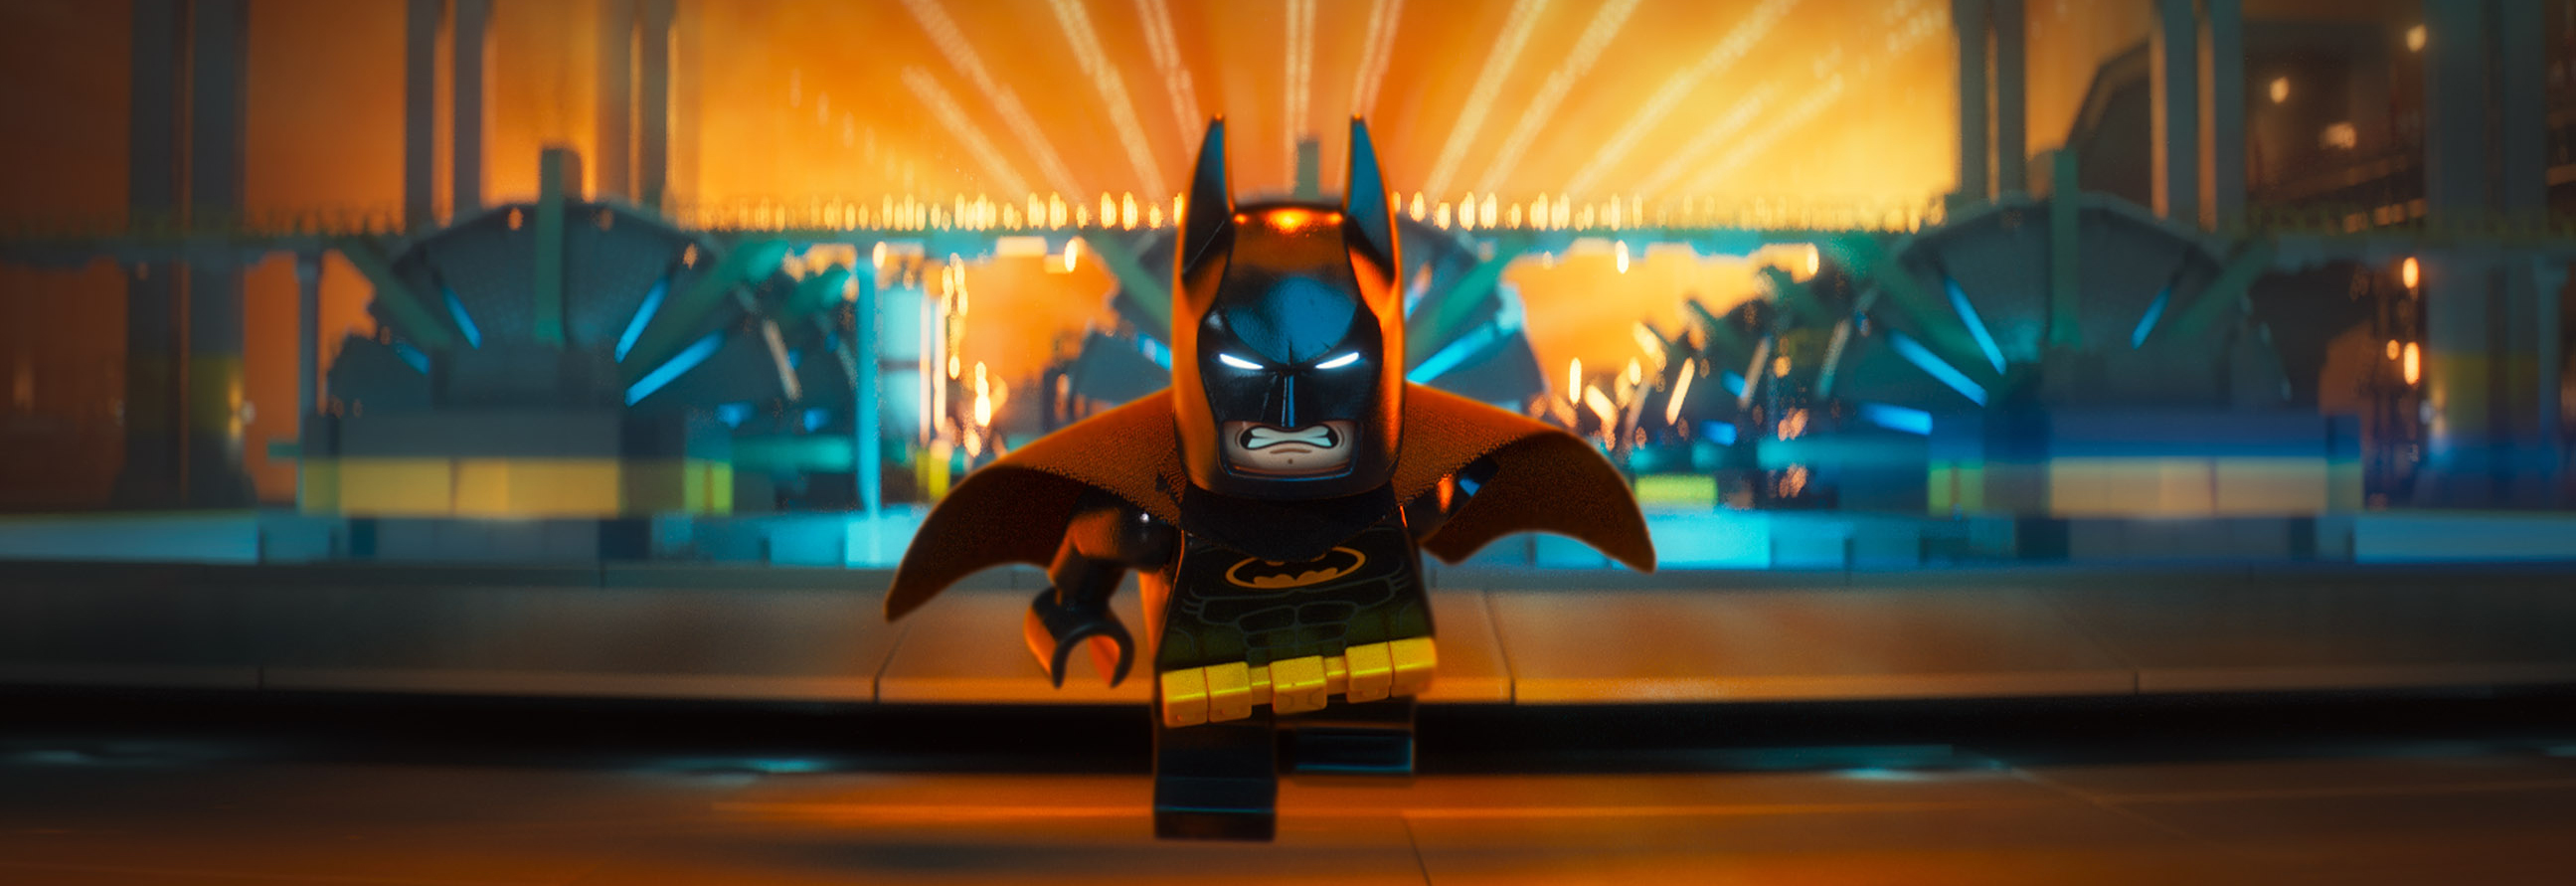 Five reasons to see The Lego Batman Movie again